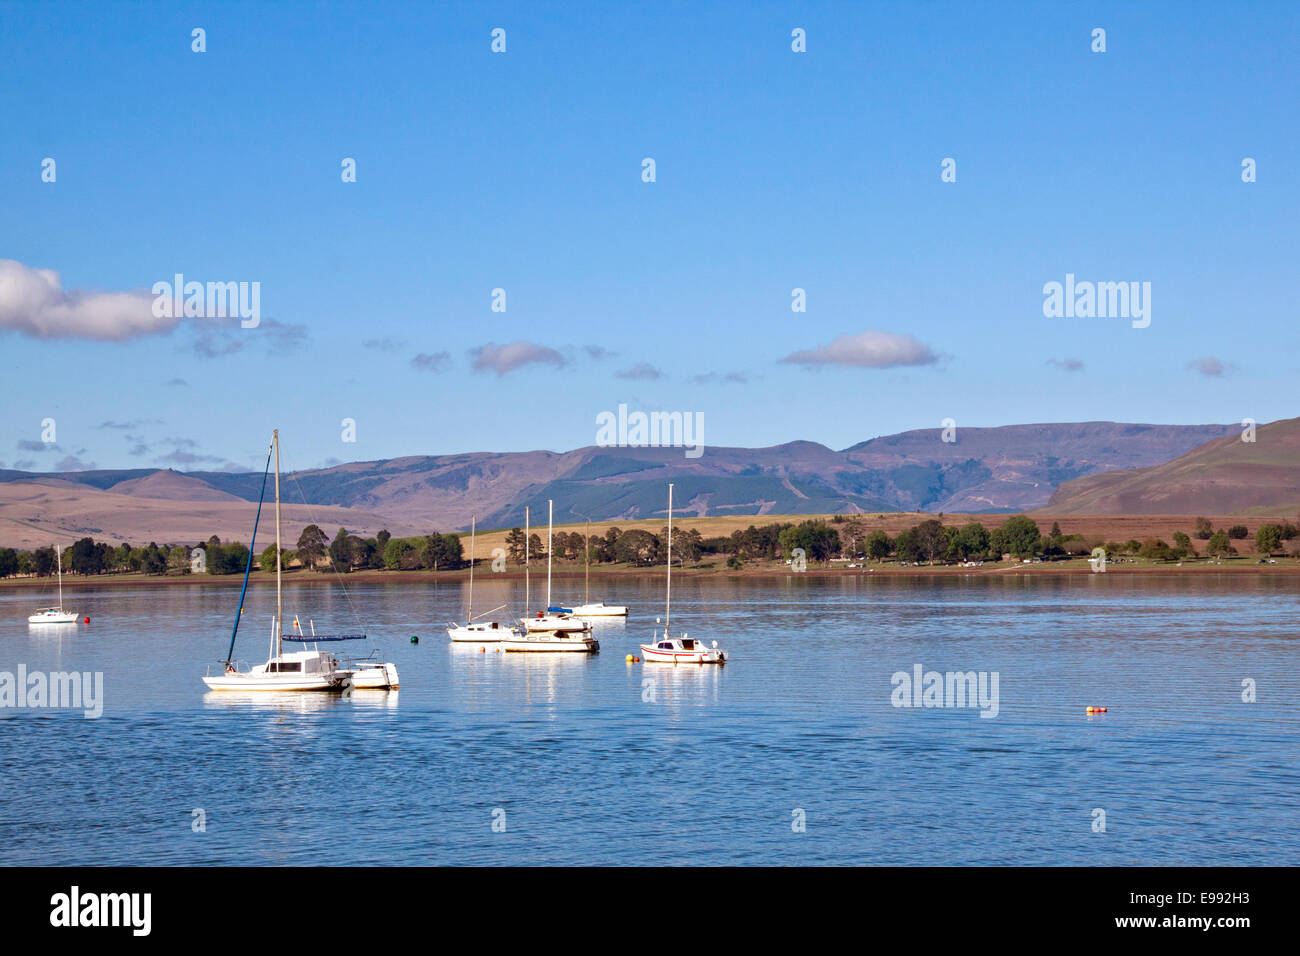 Low-lying clouds on the mountains overlooking yacht anchored in Midmar dam in the  Midlands of Natal in South Africa Stock Photo